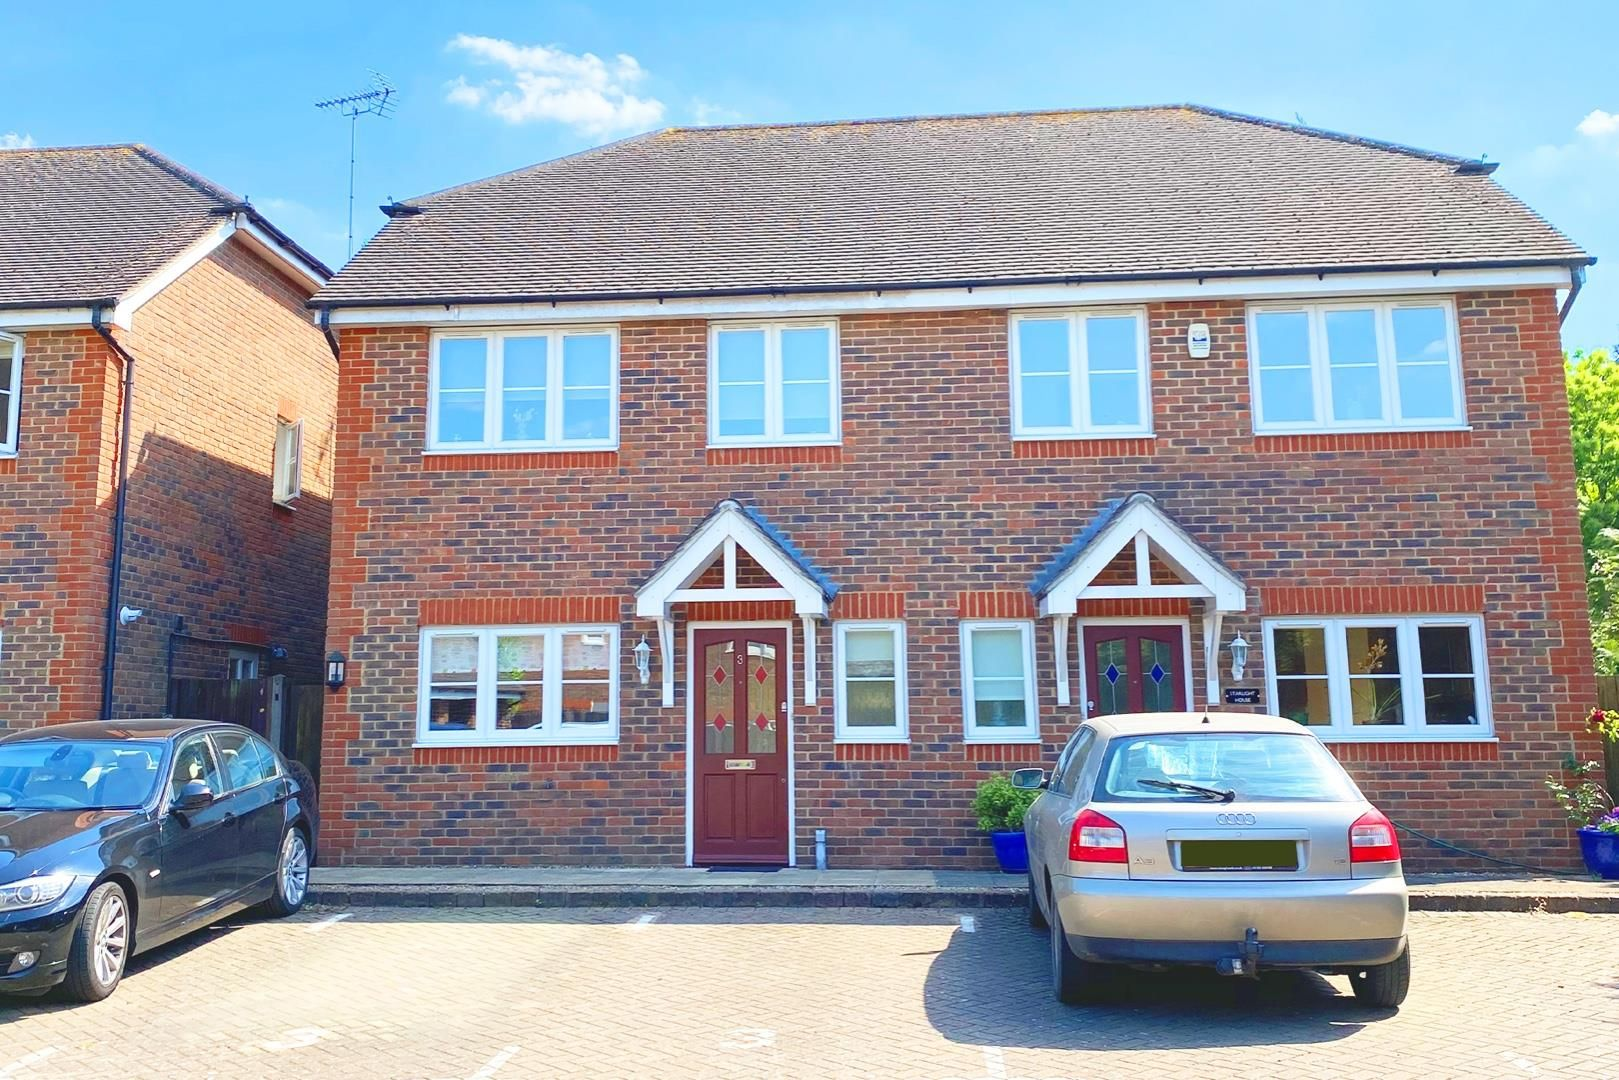 3 bed semi-detached for sale in Warfield 1